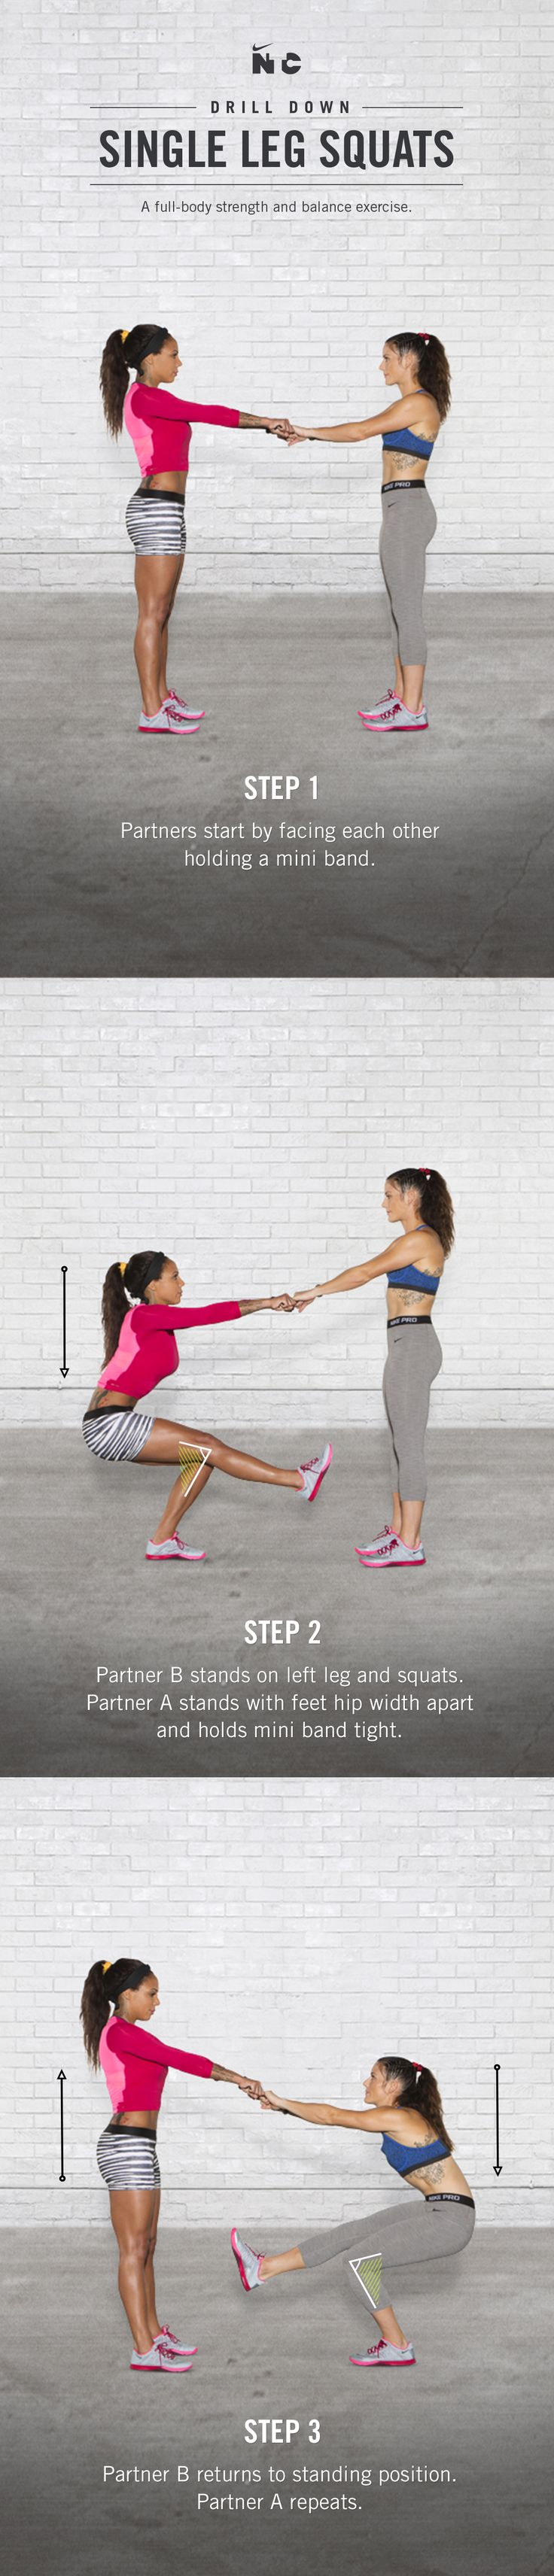 Challenge your strength and balance with Single Leg Squats in Sydney Leroux and Ali Krieger's Dynamic Duo partner workout on Nike+ Training Club.